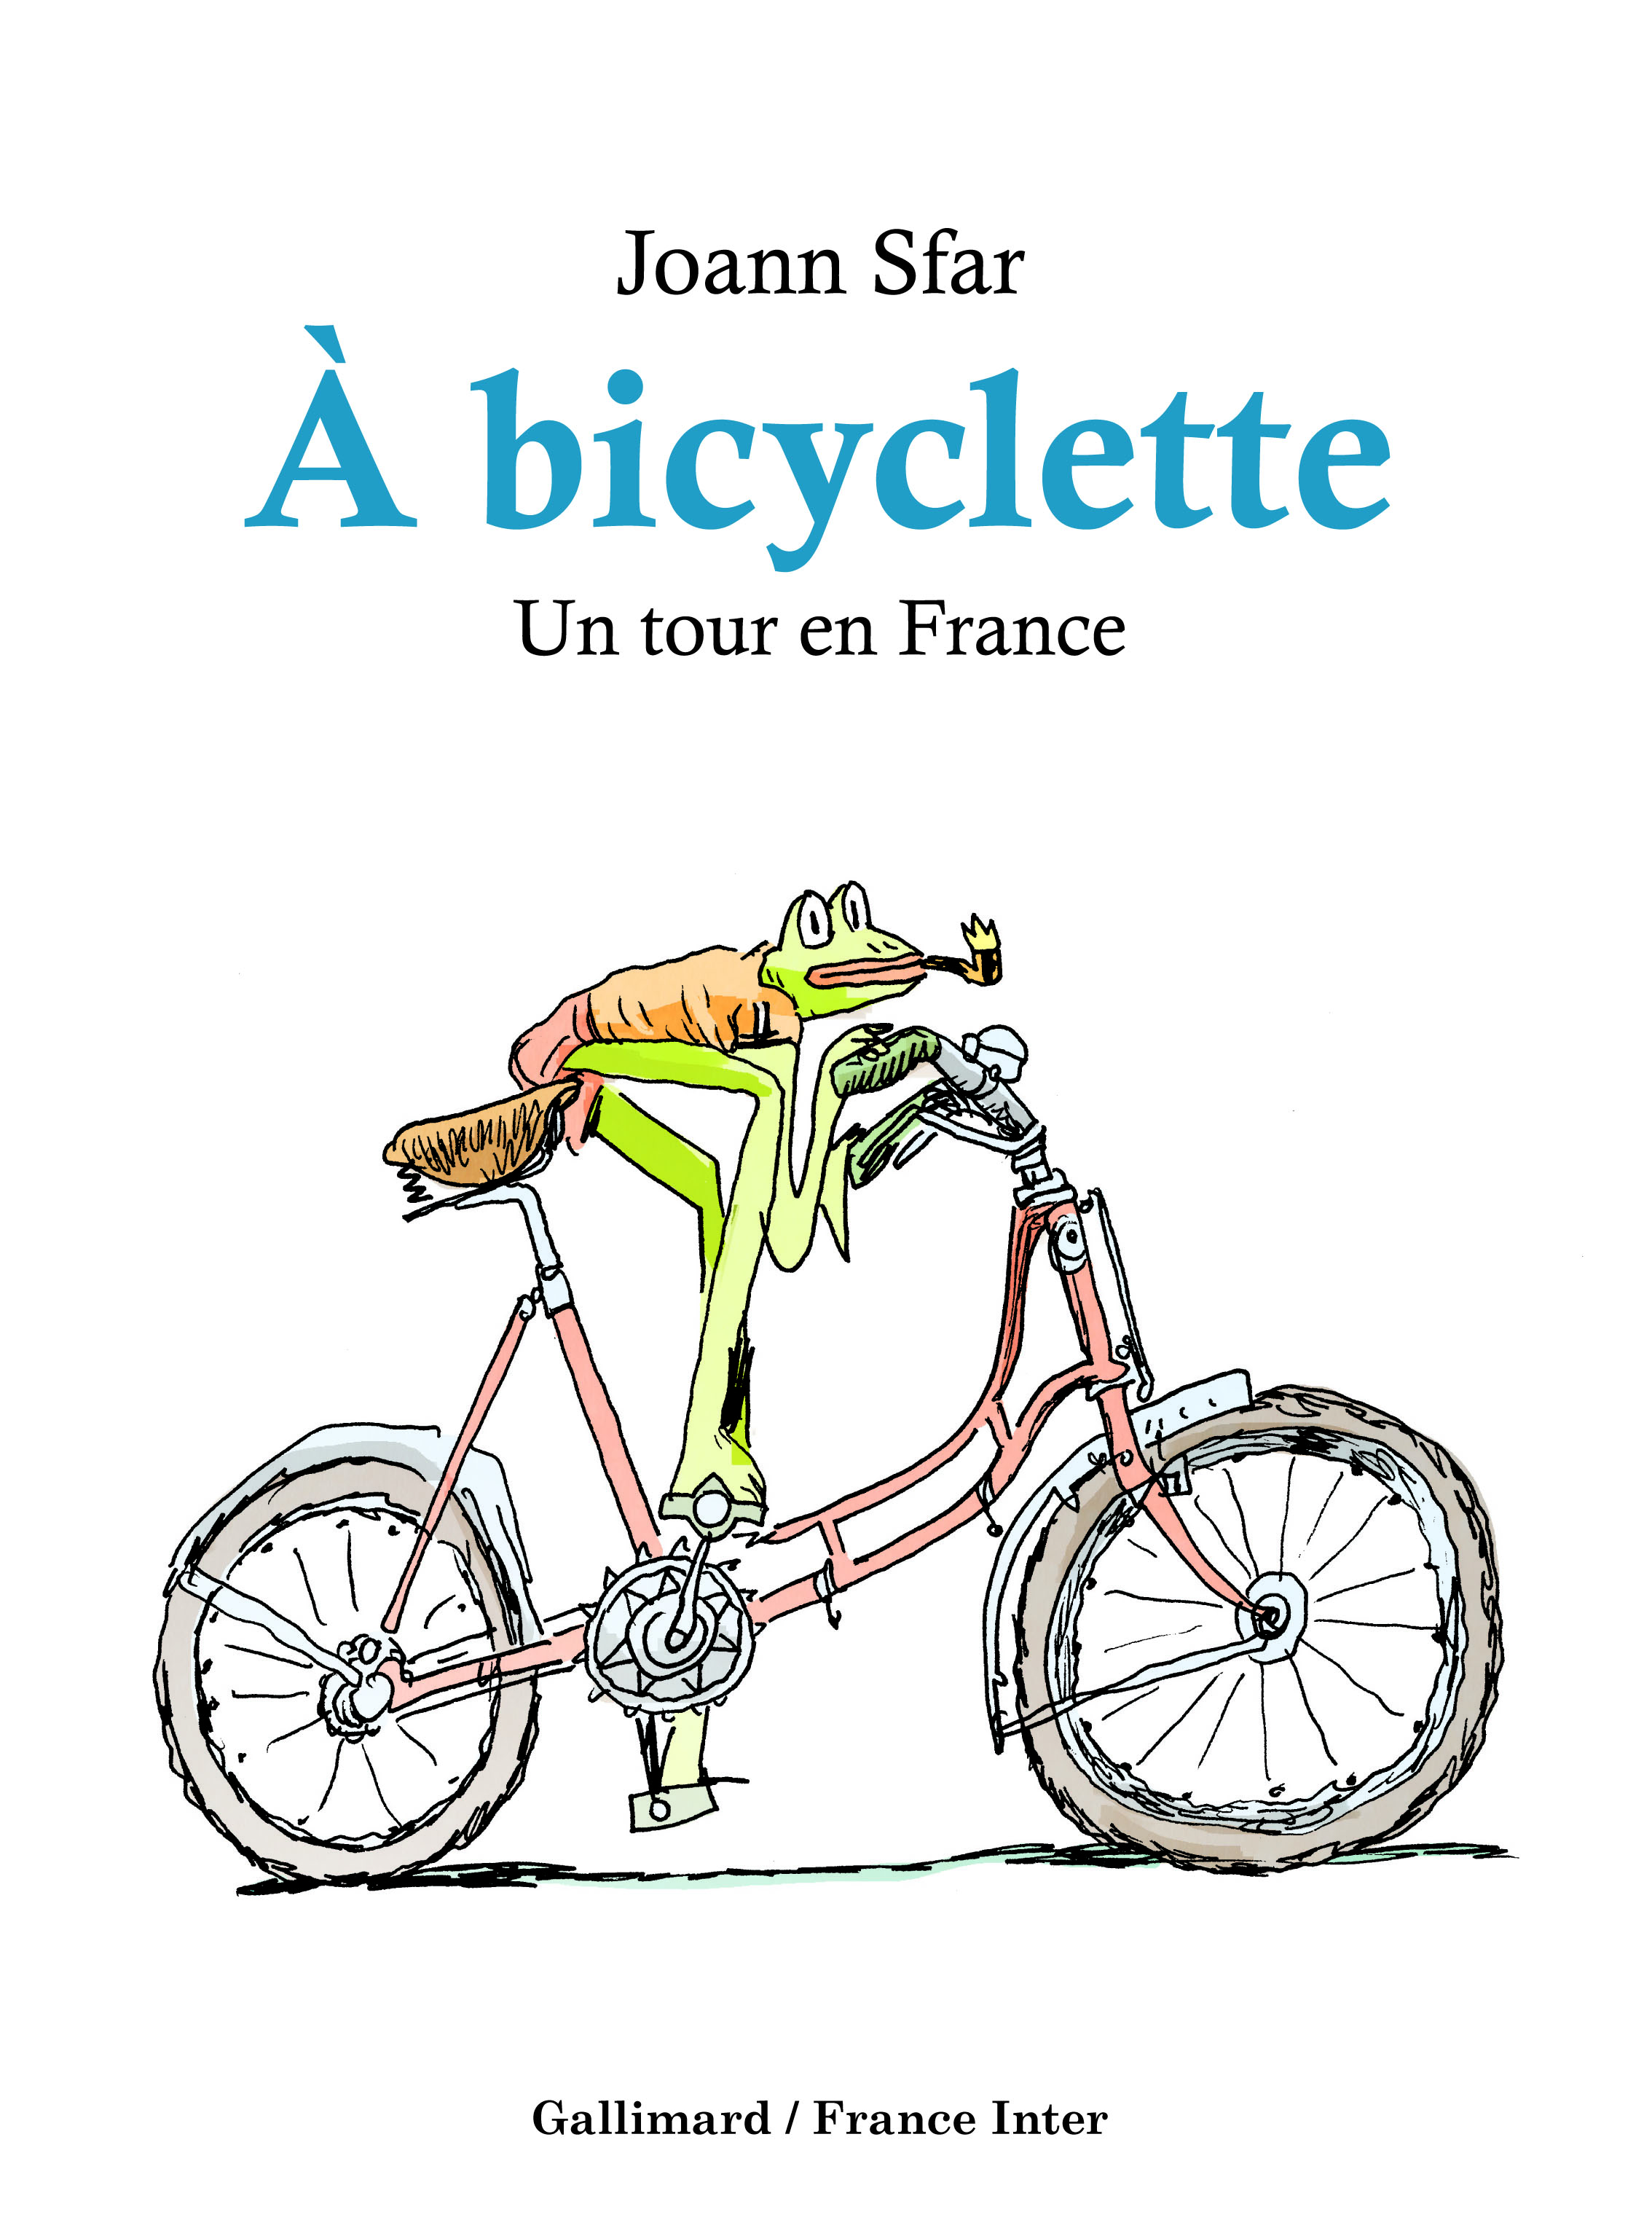 À bicyclette, Joann Sfar a fait son Tour de France